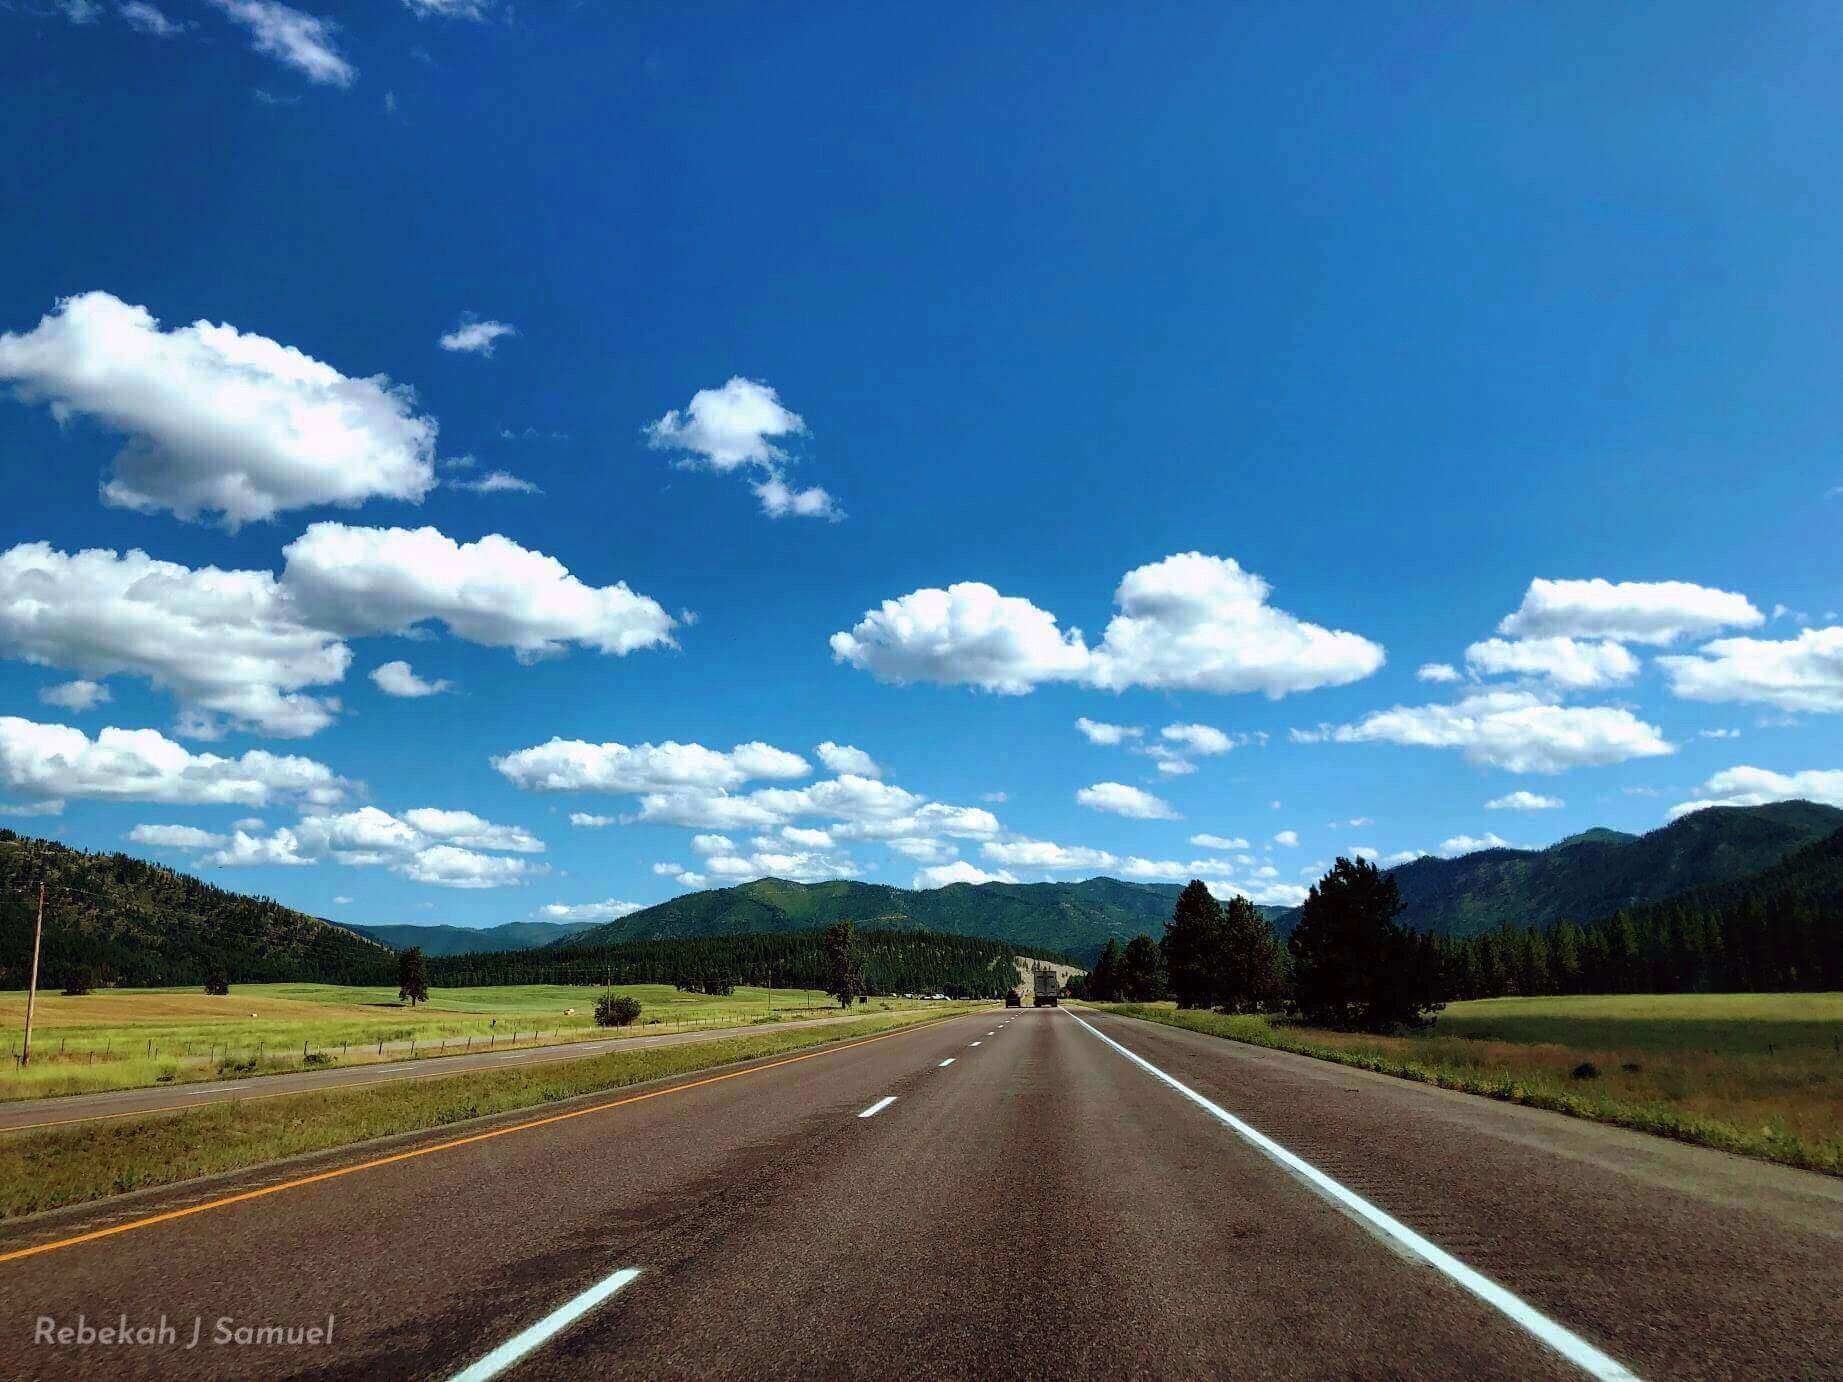 Montana Road, Blue Sky, and Mountains